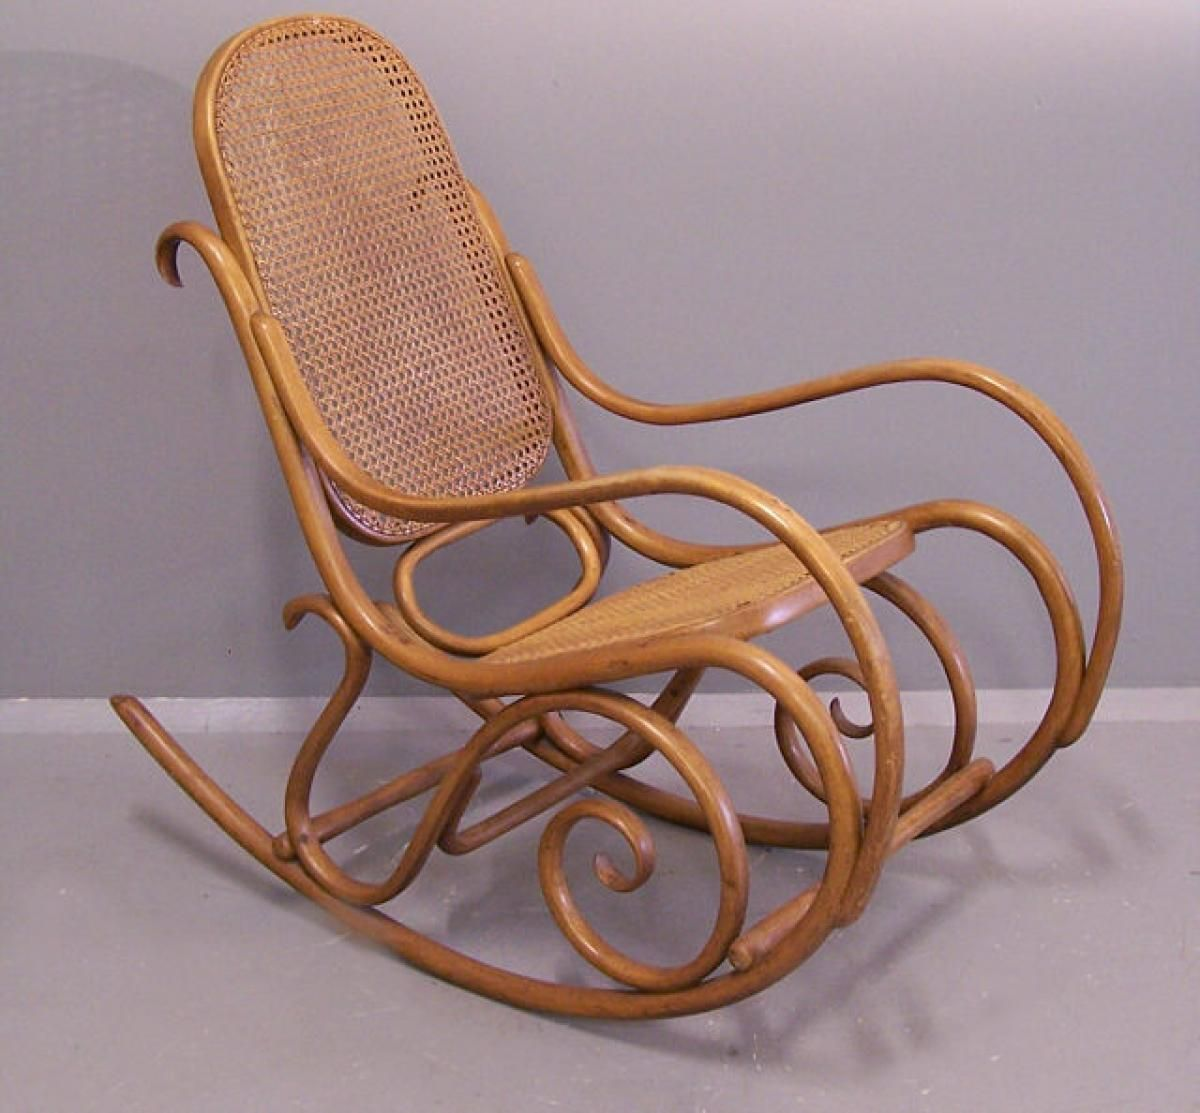 Original white painted bentwood rocking chair is no longer available - Gebruder Thonet Bentwood Rocking Chair Number 7025